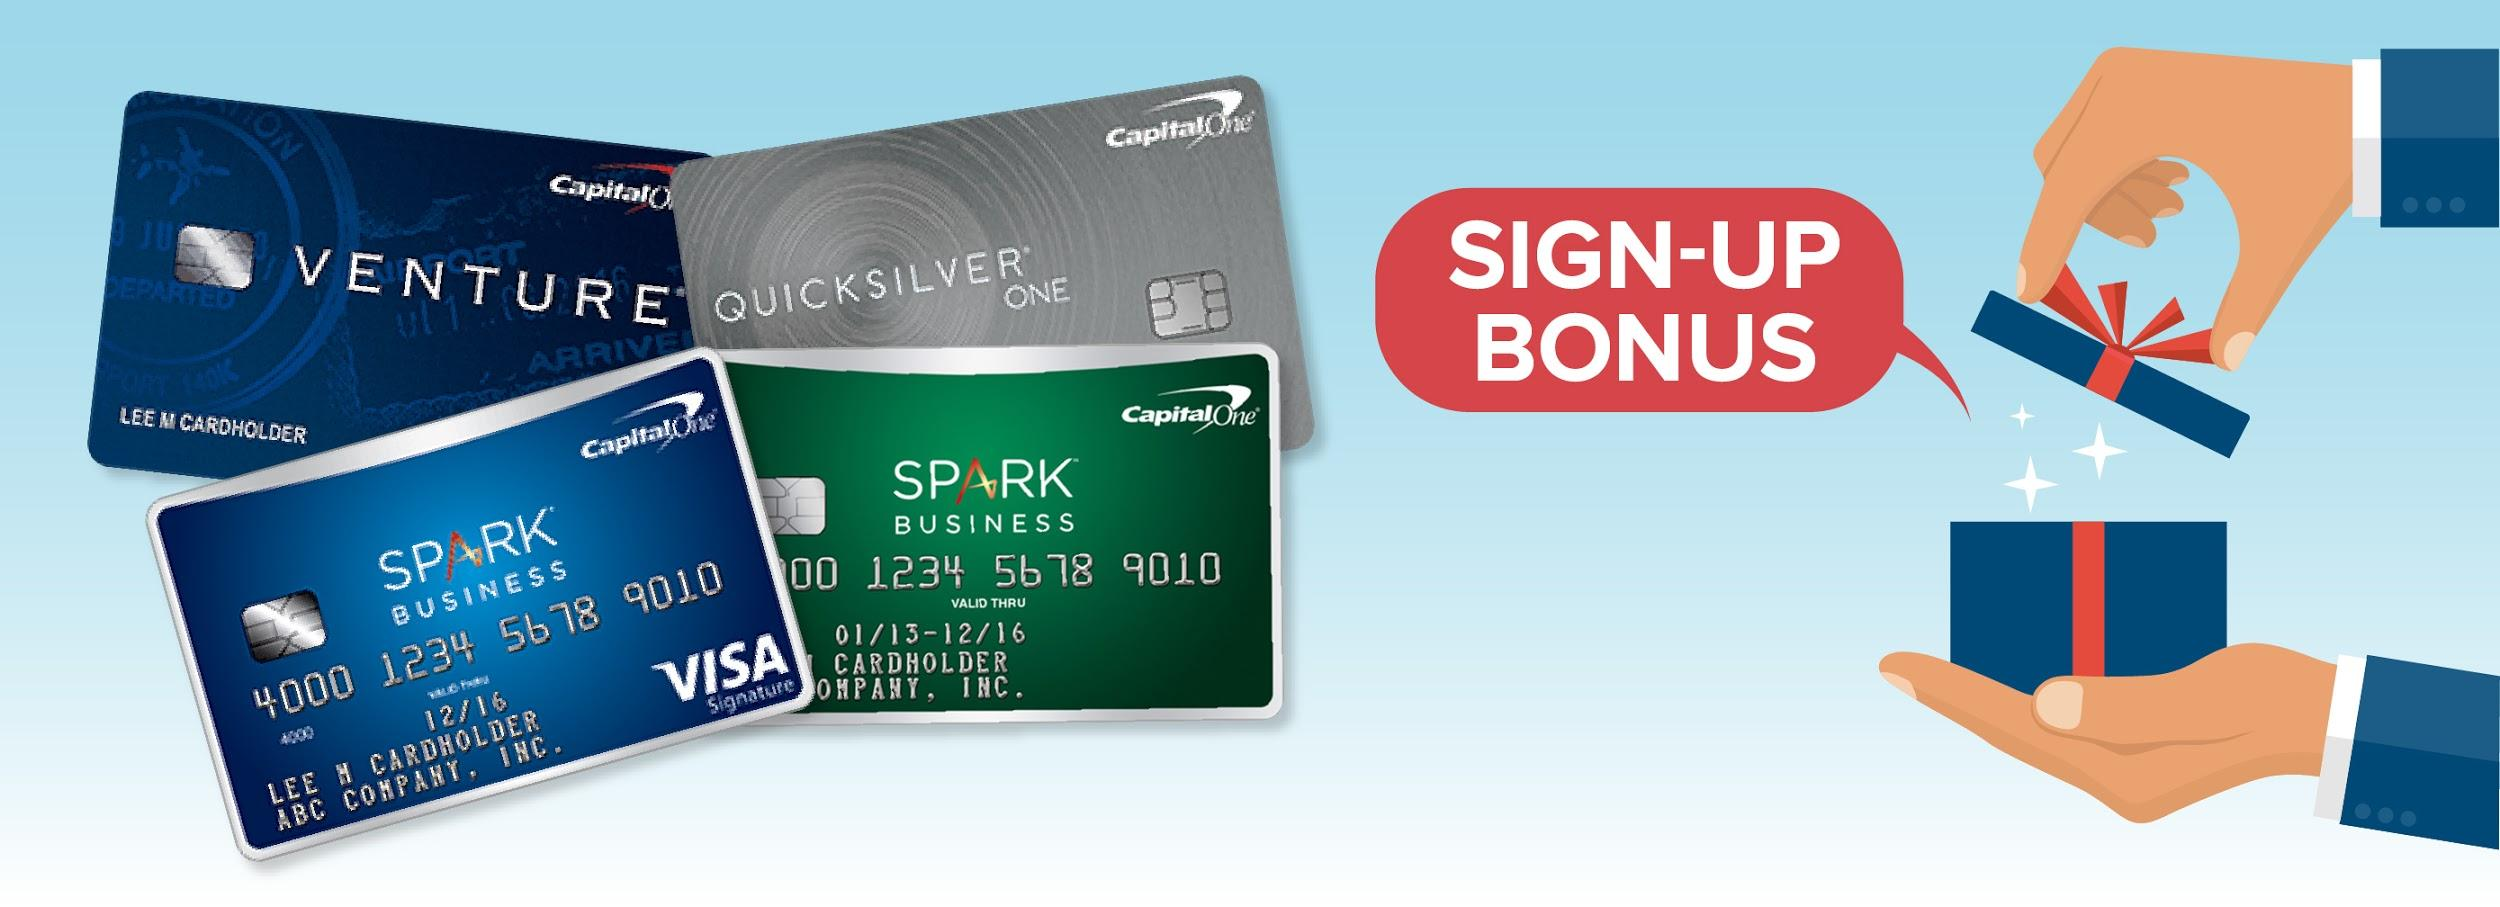 Capital e s Best e Time Bonus Credit Cards CreditLoan